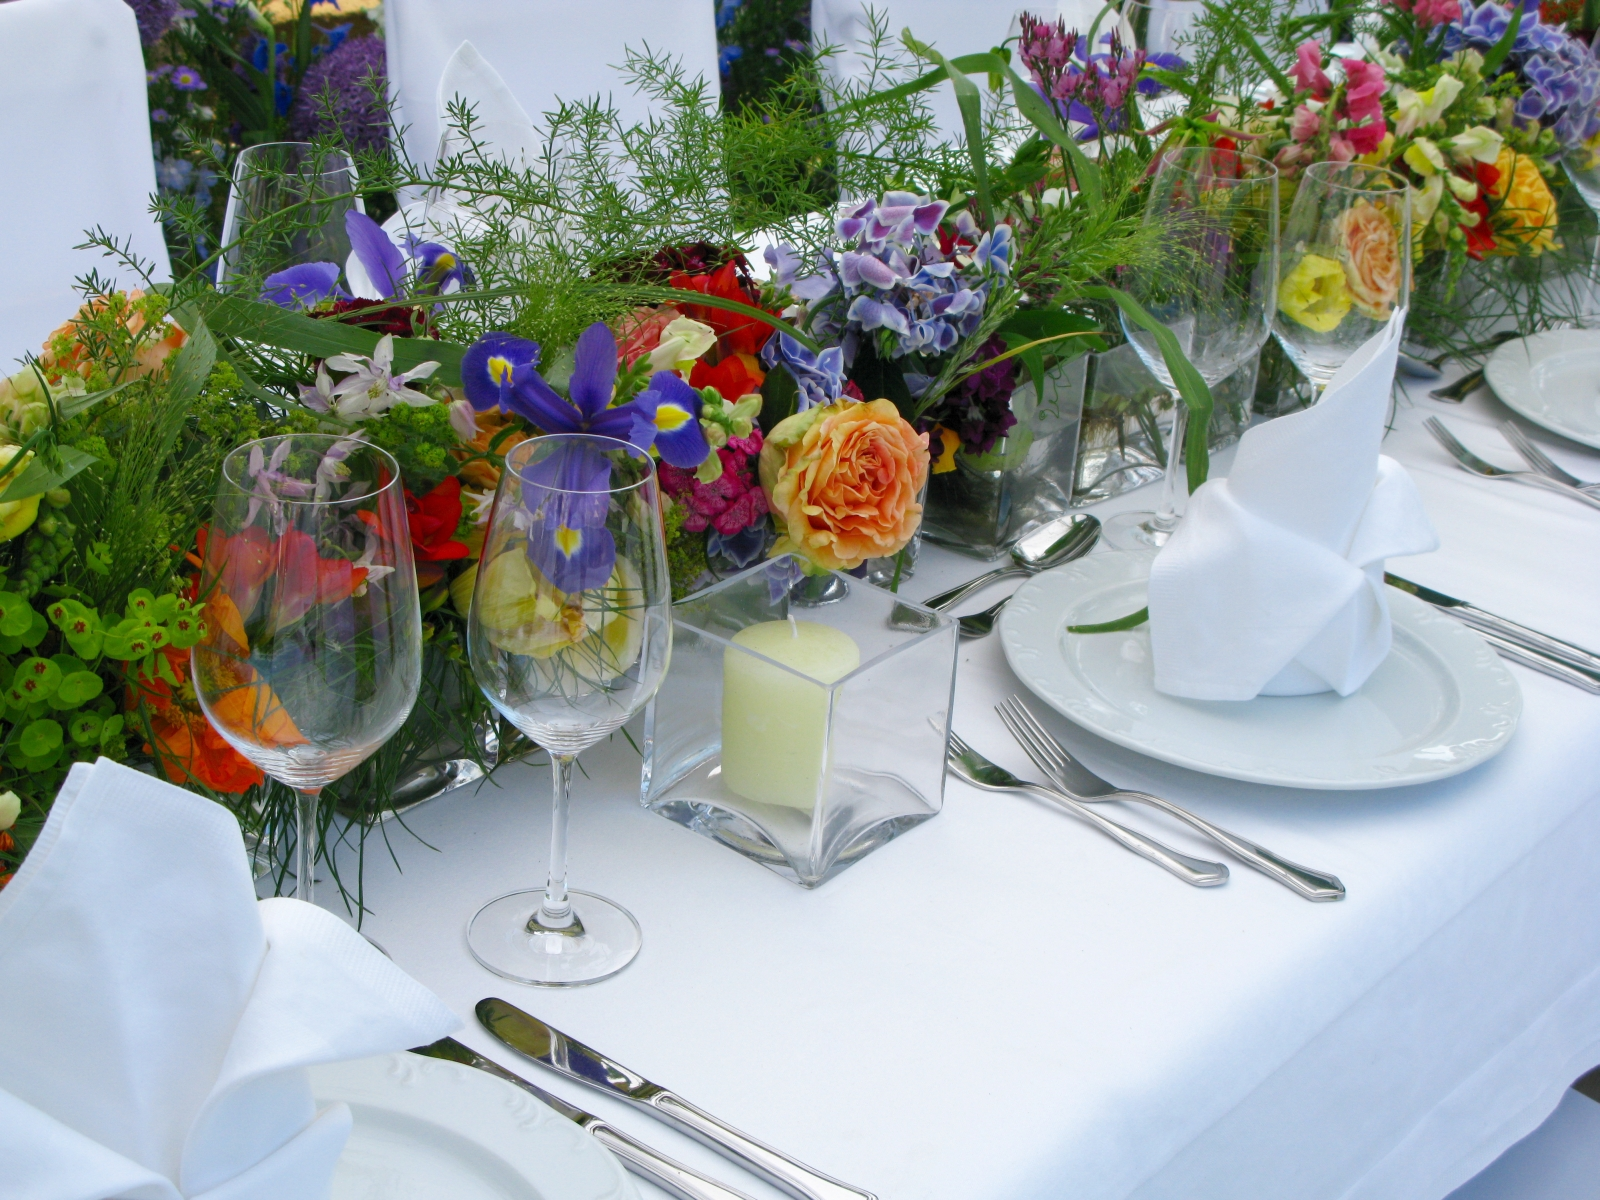 Wedding-table-setting-137595271_1600x1200.jpeg